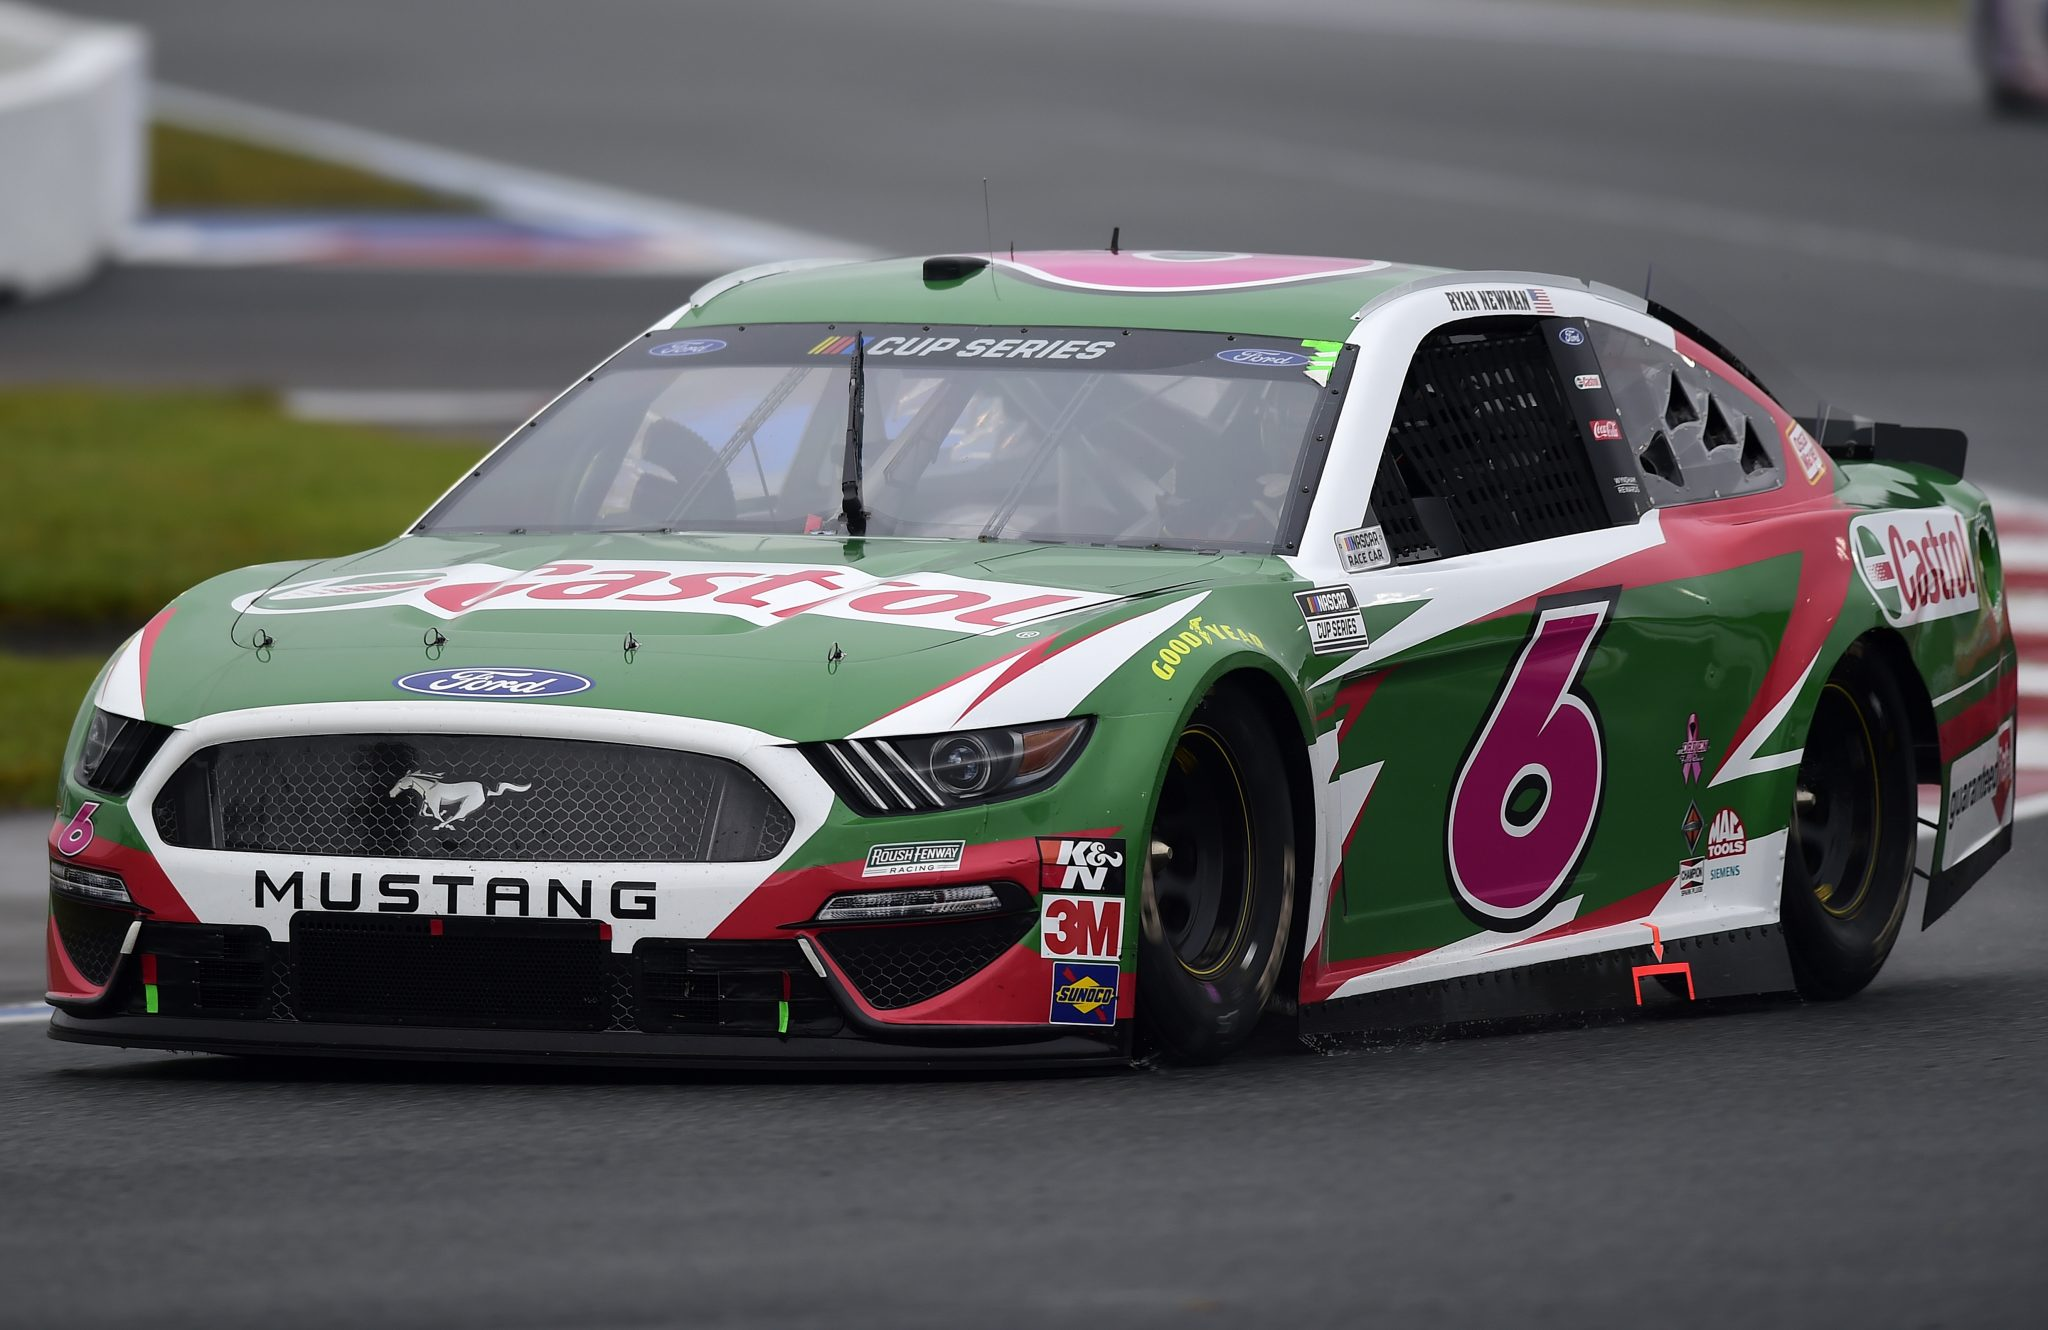 CONCORD, NORTH CAROLINA - OCTOBER 11: Ryan Newman, driver of the #6 Castrol Ford, drives during the NASCAR Cup Series Bank of America ROVAL 400 at Charlotte Motor Speedway on October 11, 2020 in Concord, North Carolina. (Photo by Jared C. Tilton/Getty Images) | Getty Images